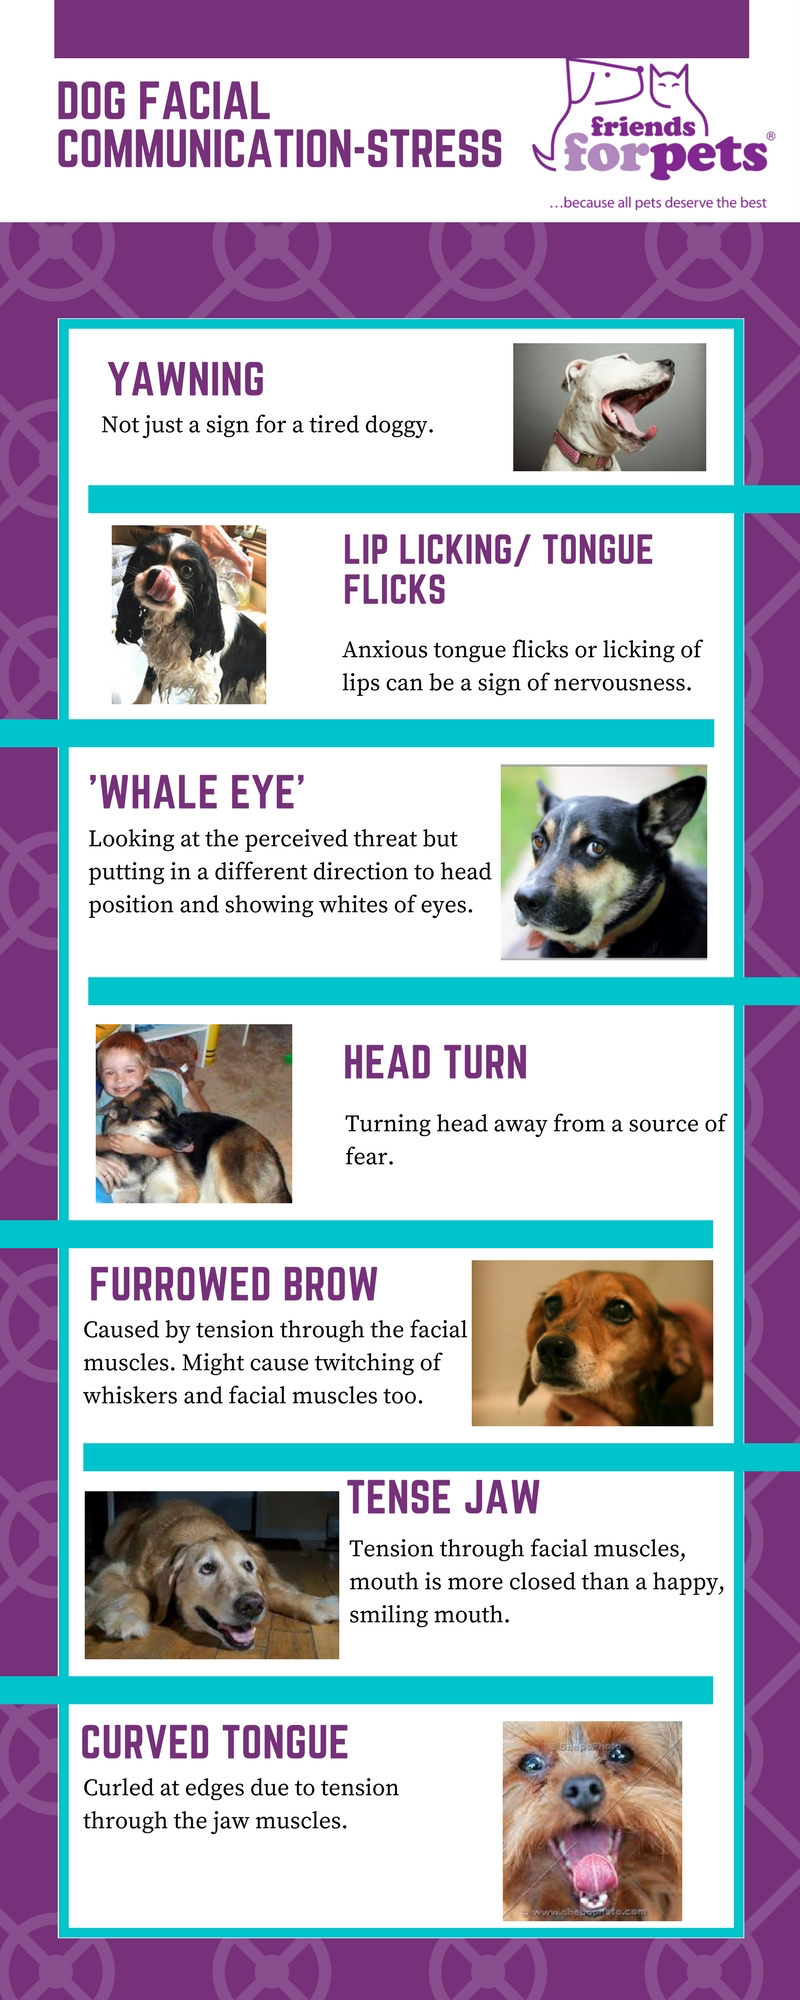 Dog Walking blog by Friends for Pets   Our Dog Walking blog written ...